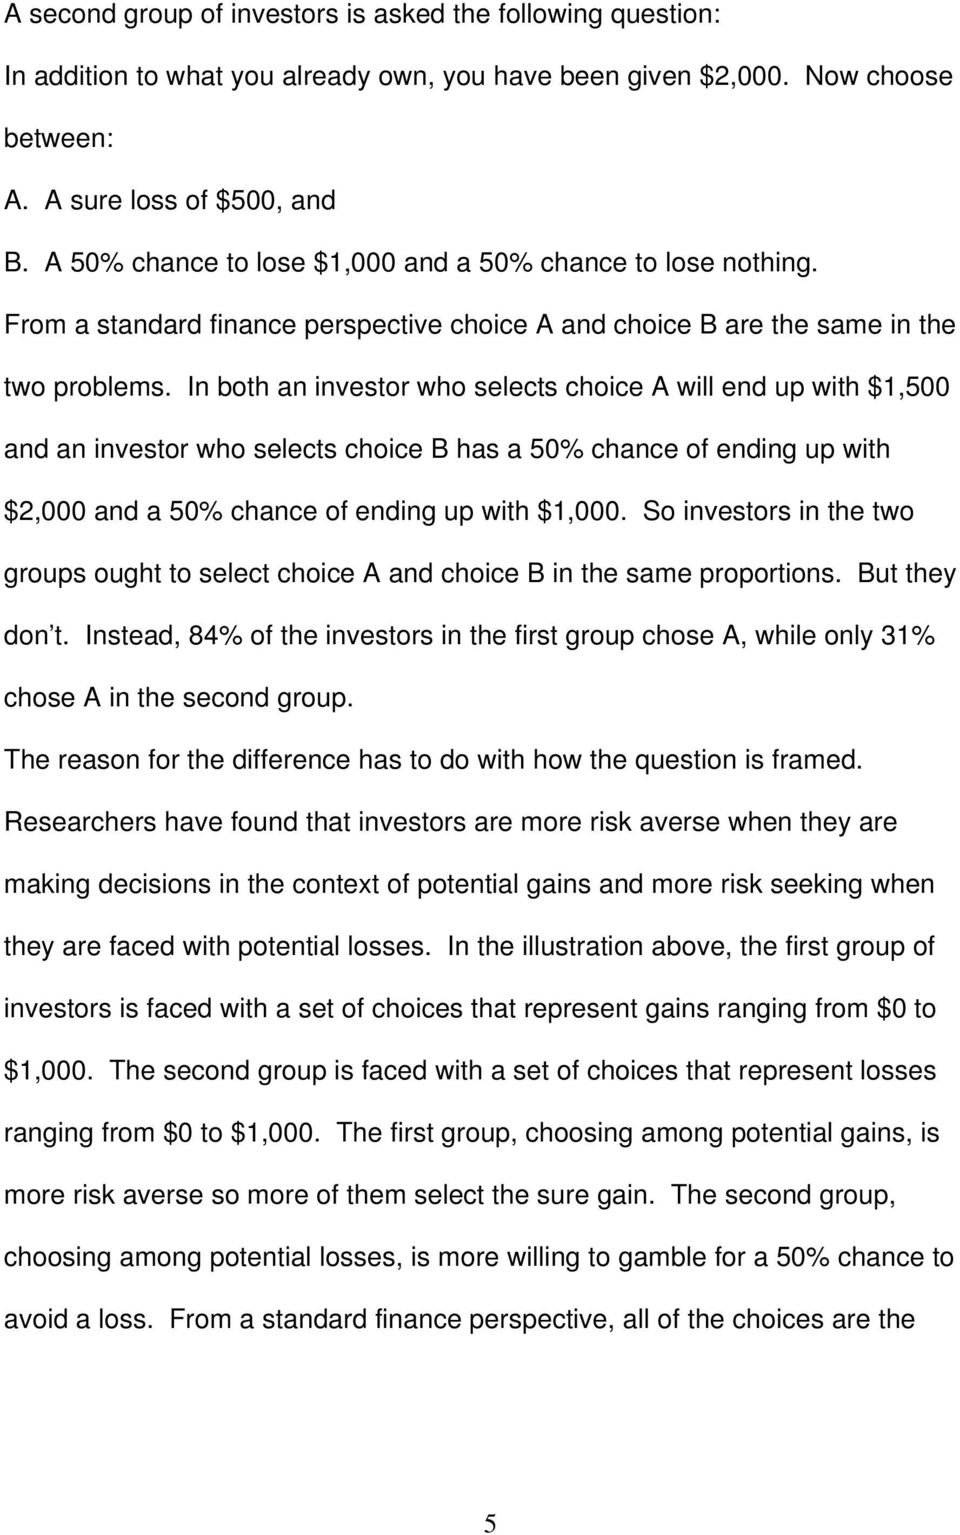 In both an investor who selects choice A will end up with $1,500 and an investor who selects choice B has a 50% chance of ending up with $2,000 and a 50% chance of ending up with $1,000.